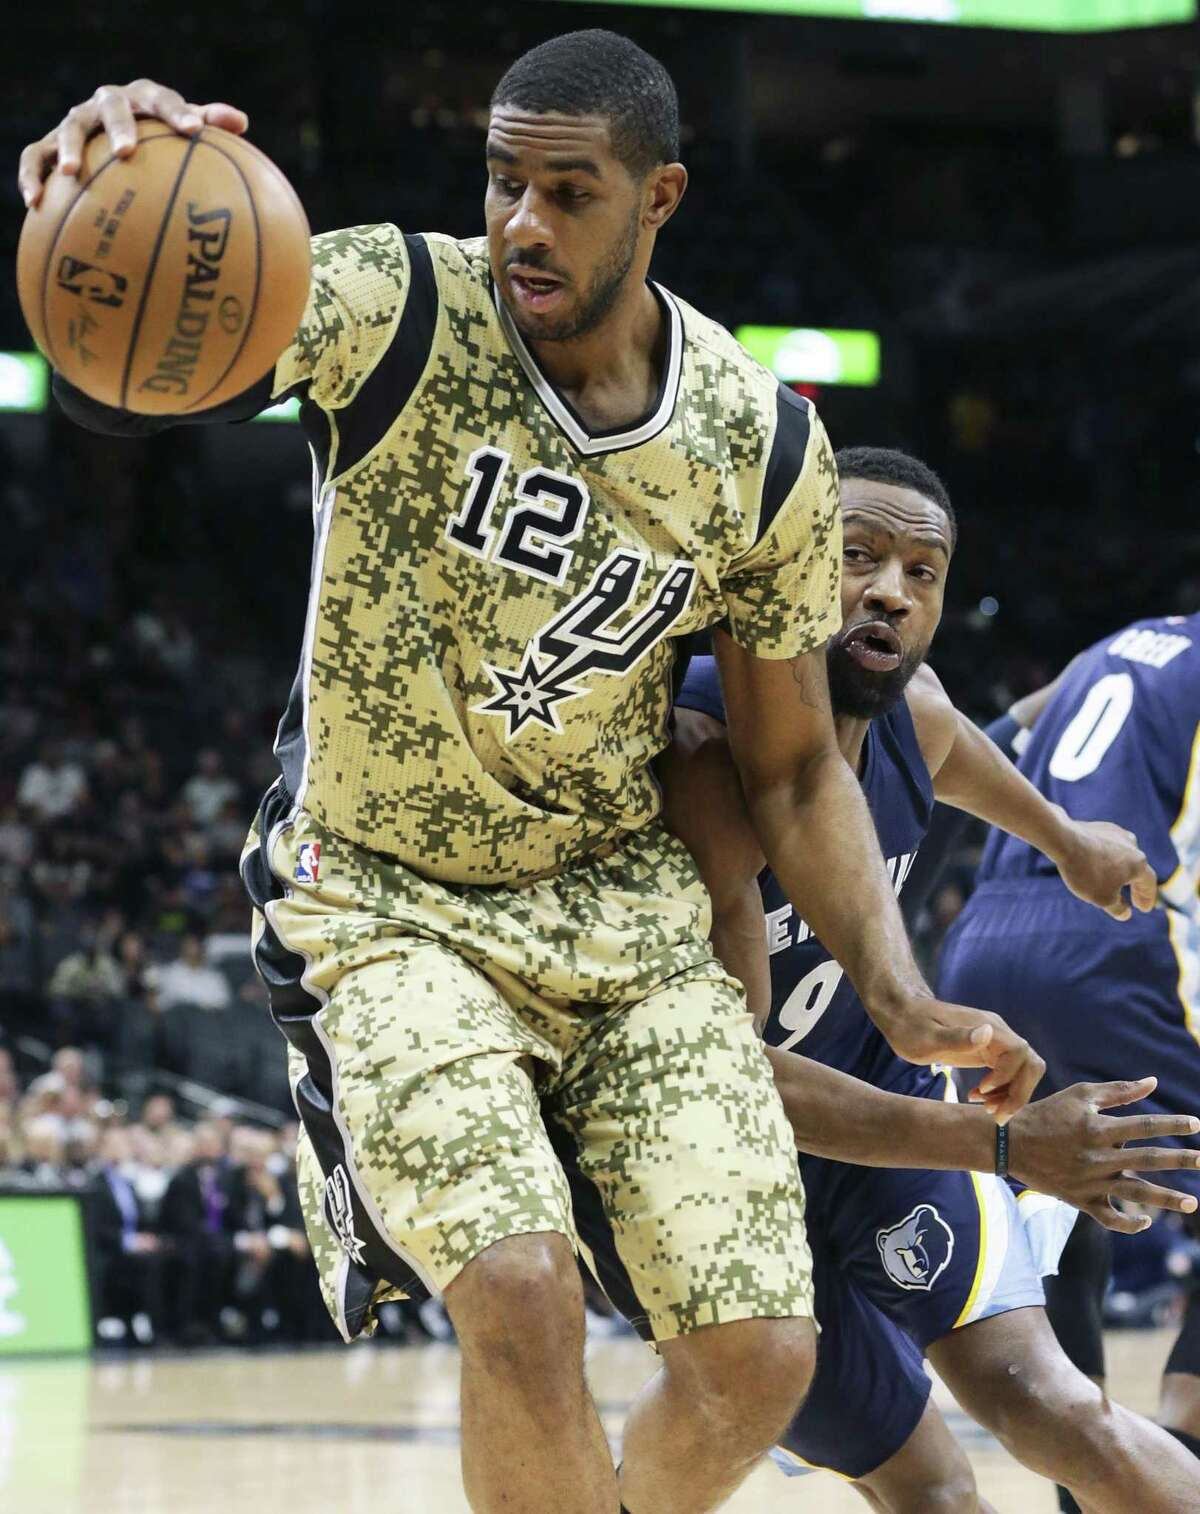 LaMarcus Aldridge gets away from Tony Allen on a spin move as the Spurs host the Grizzlies at the AT&T Center on March 23, 2017.